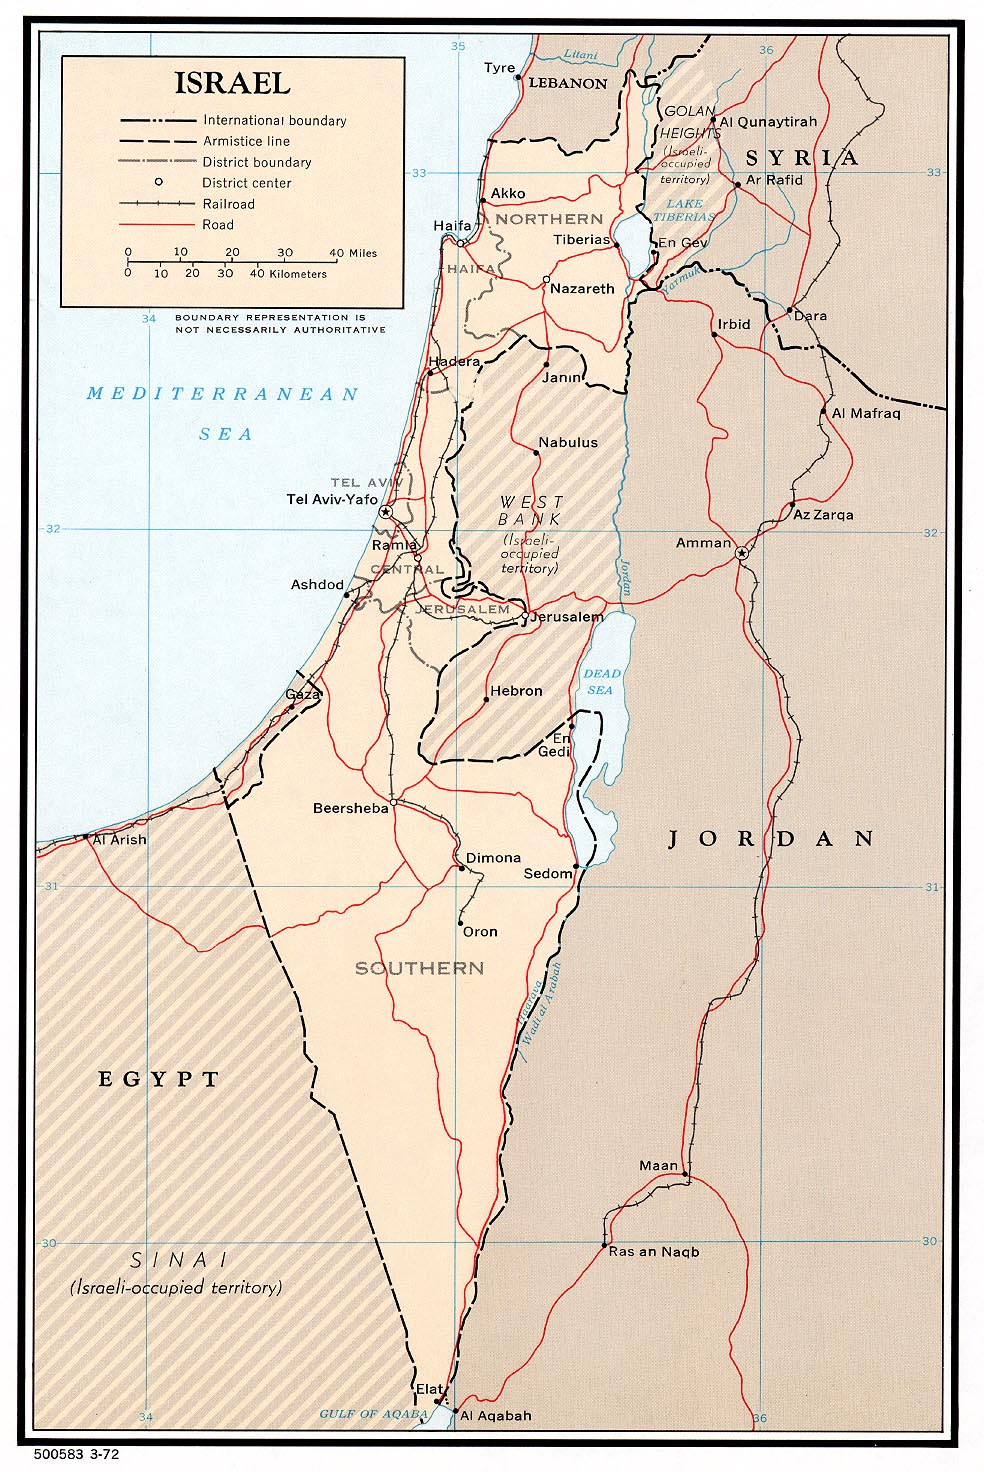 Israel Maps PerryCastañeda Map Collection UT Library Online - Mapa de israel